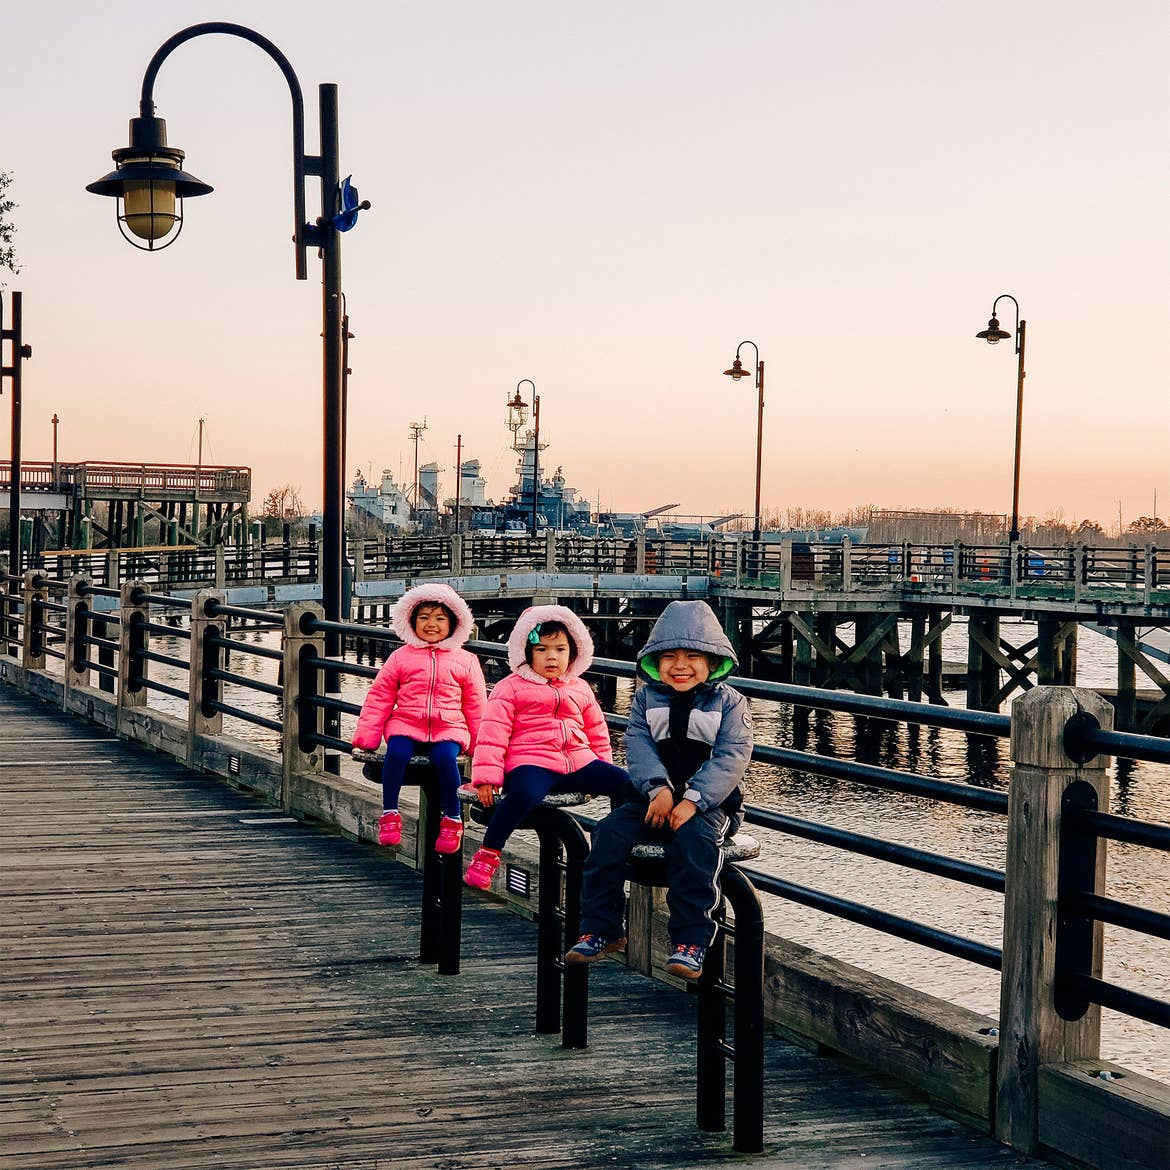 Three Asian Pacific Islander toddlers (left to right: Two girls and a boy) wear pink and blue winter coats while seated on safety railing near a dock for battleships.